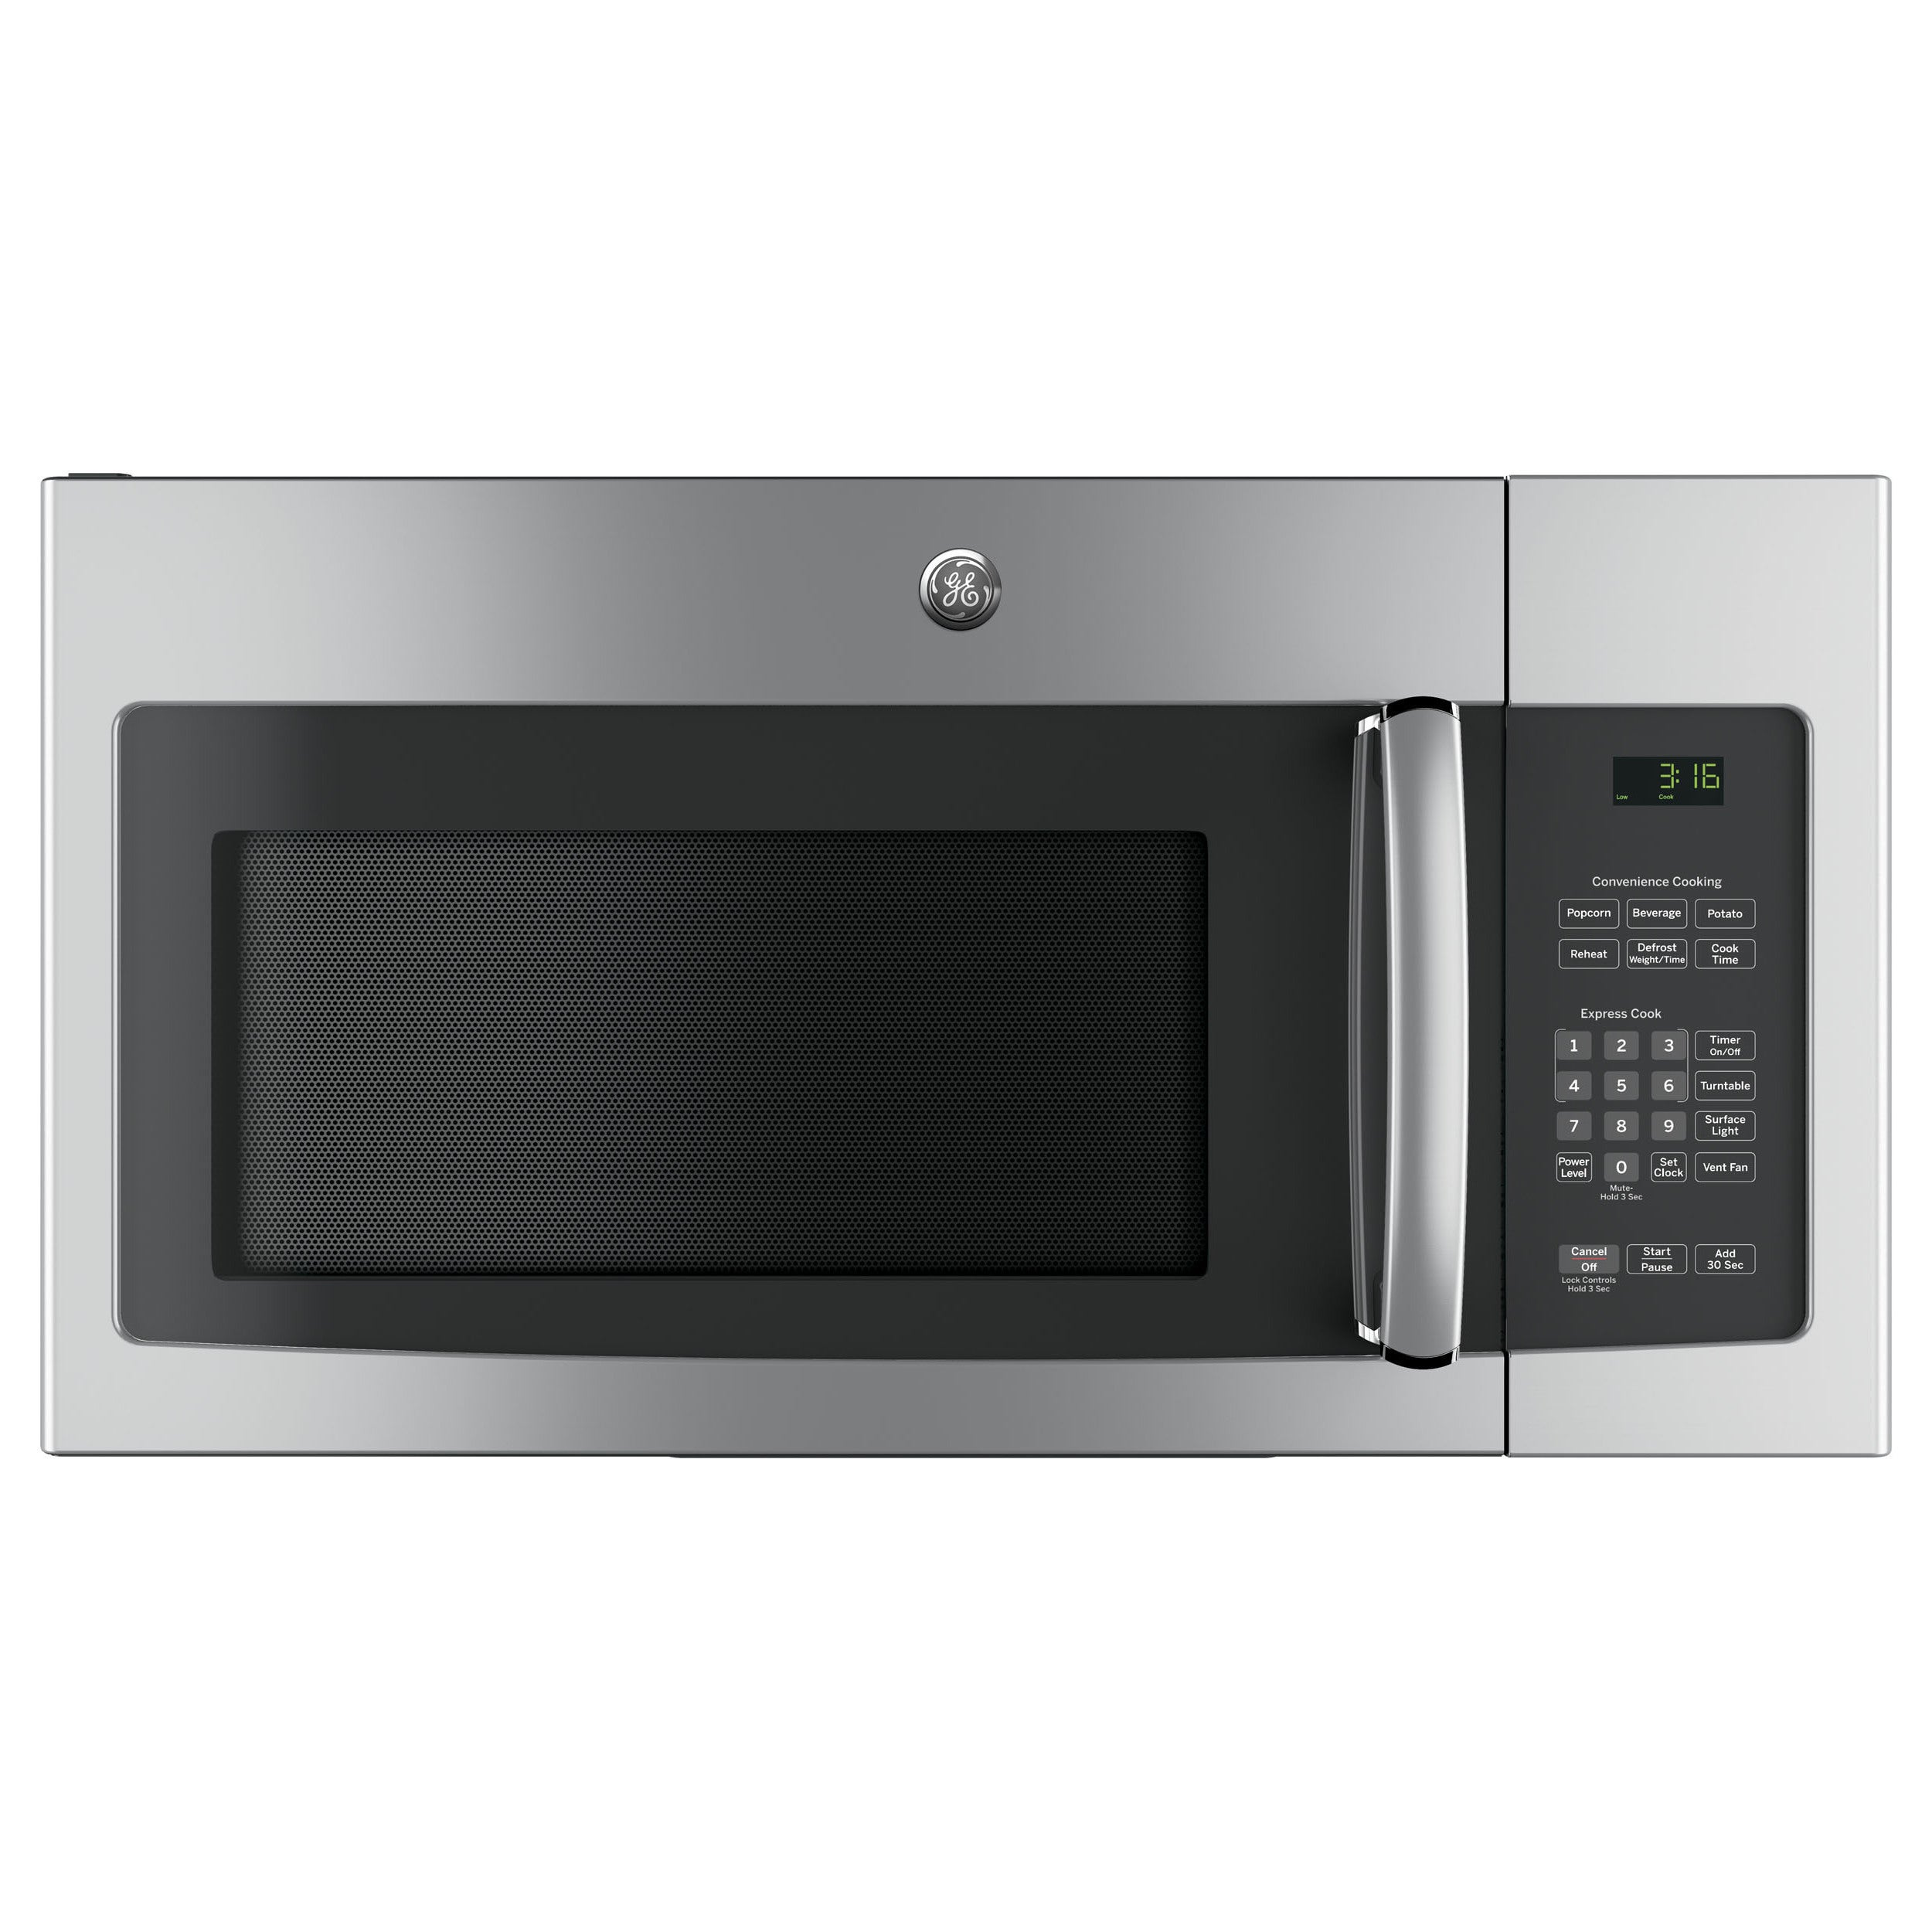 GE 1.6-cubic Feet Over-the-range Microwave Oven (As Is It...